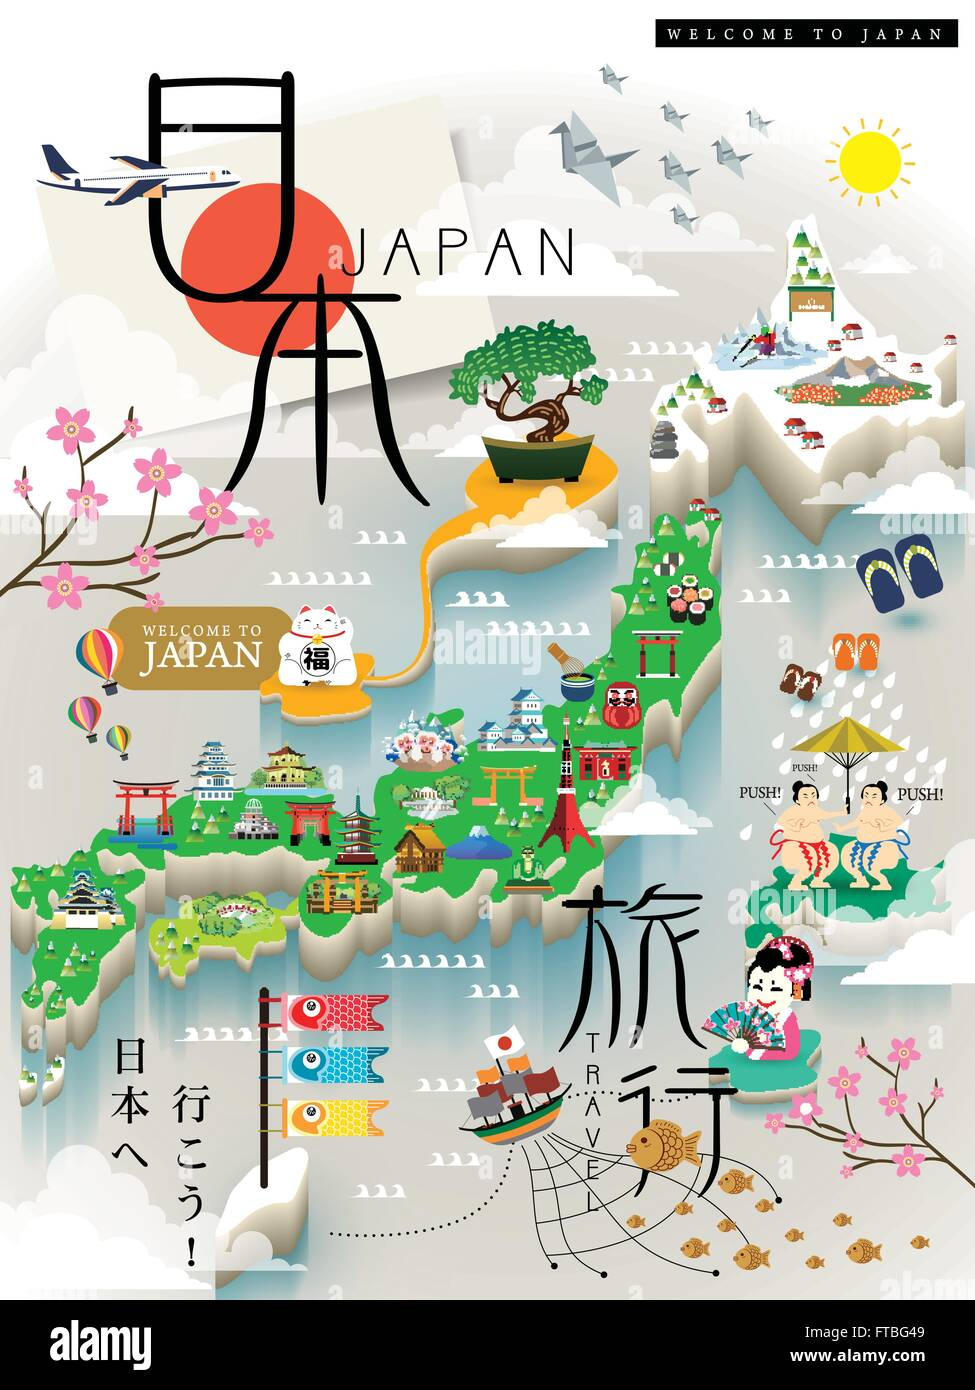 japan travel map with famous attractions  japan travel and let's go tojapan in japanese. japan travel map with famous attractions  japan travel and let's